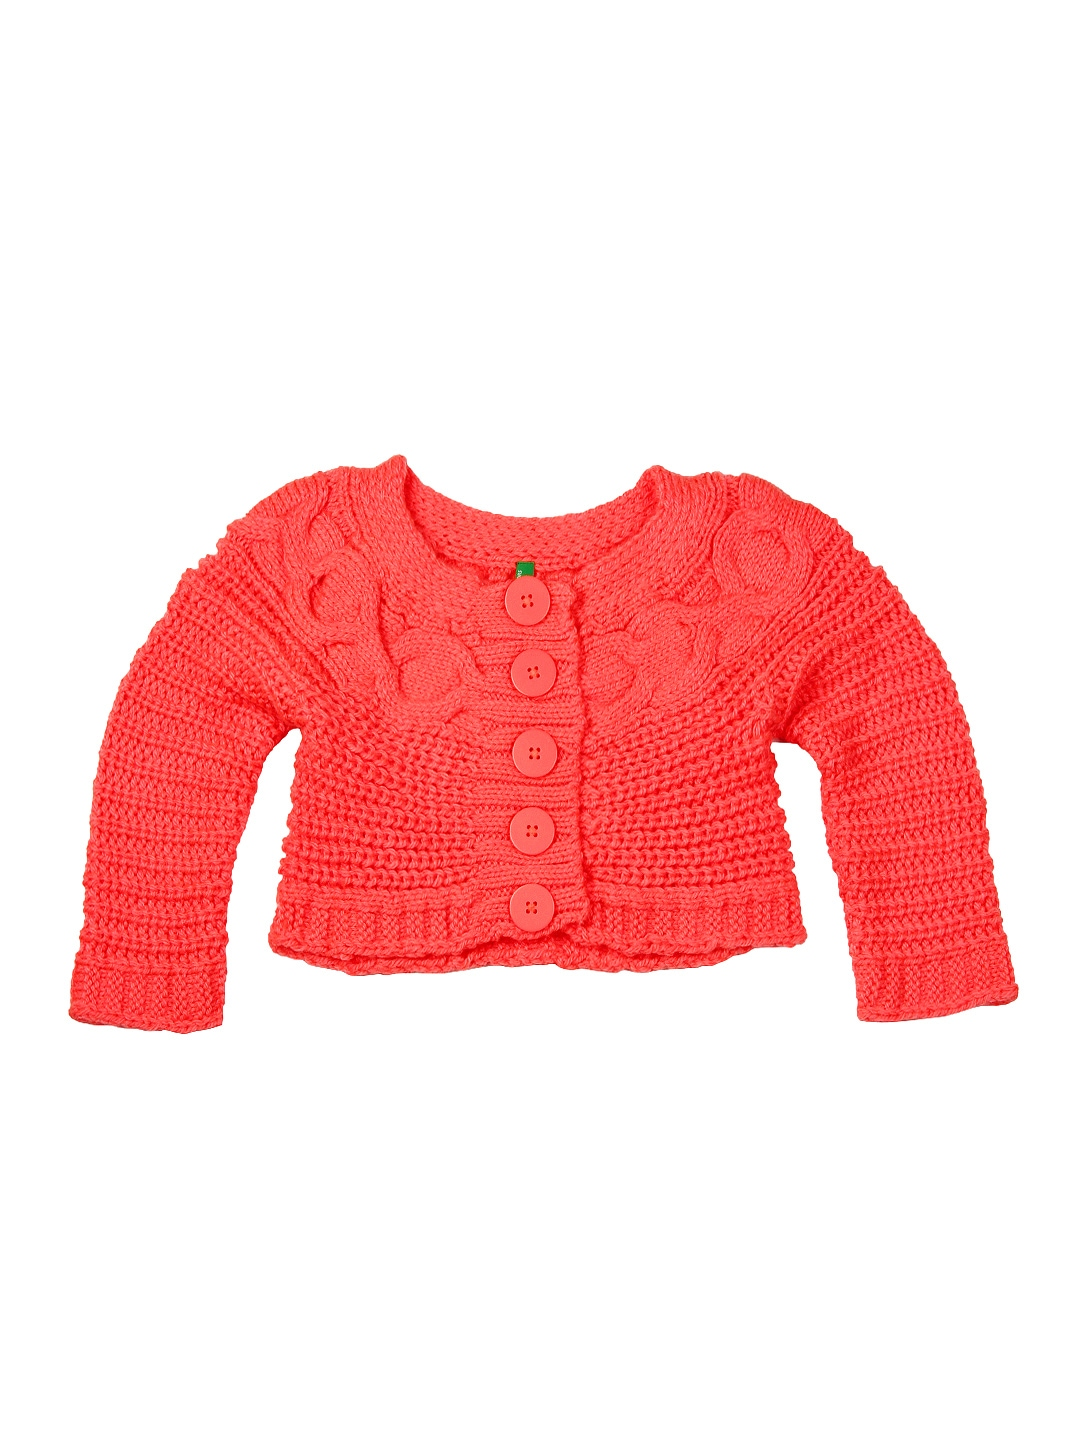 Clothing Girls Clothing Sweaters United Colors of Benetton Sweaters